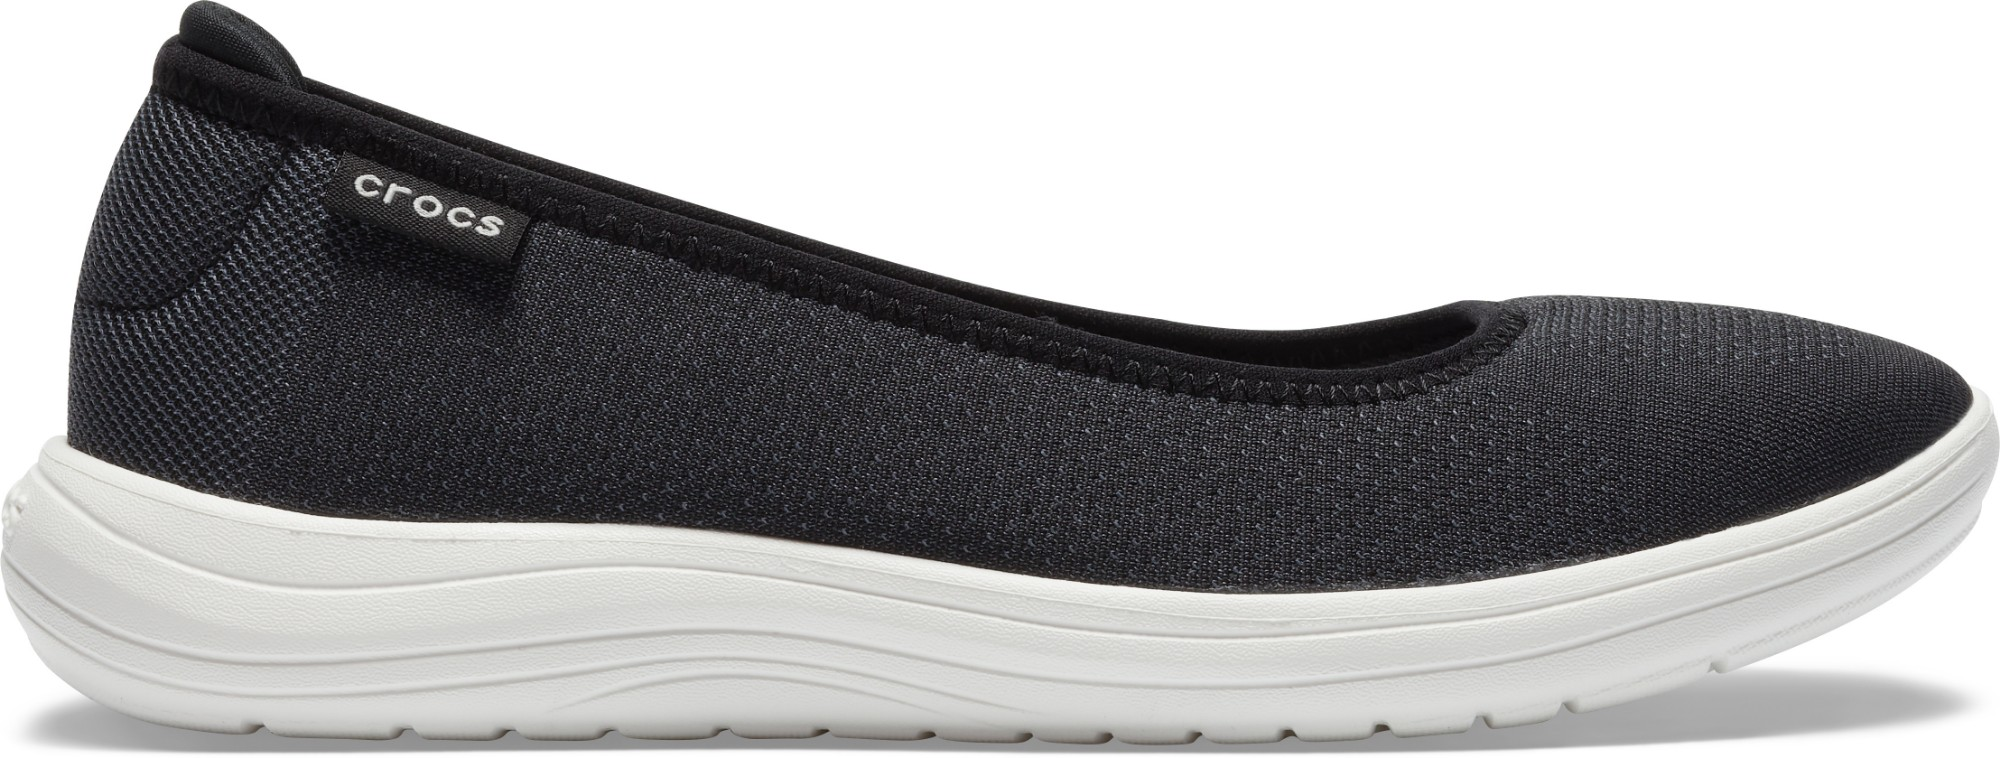 Crocs™ Reviva Flat Women's Black/White 35